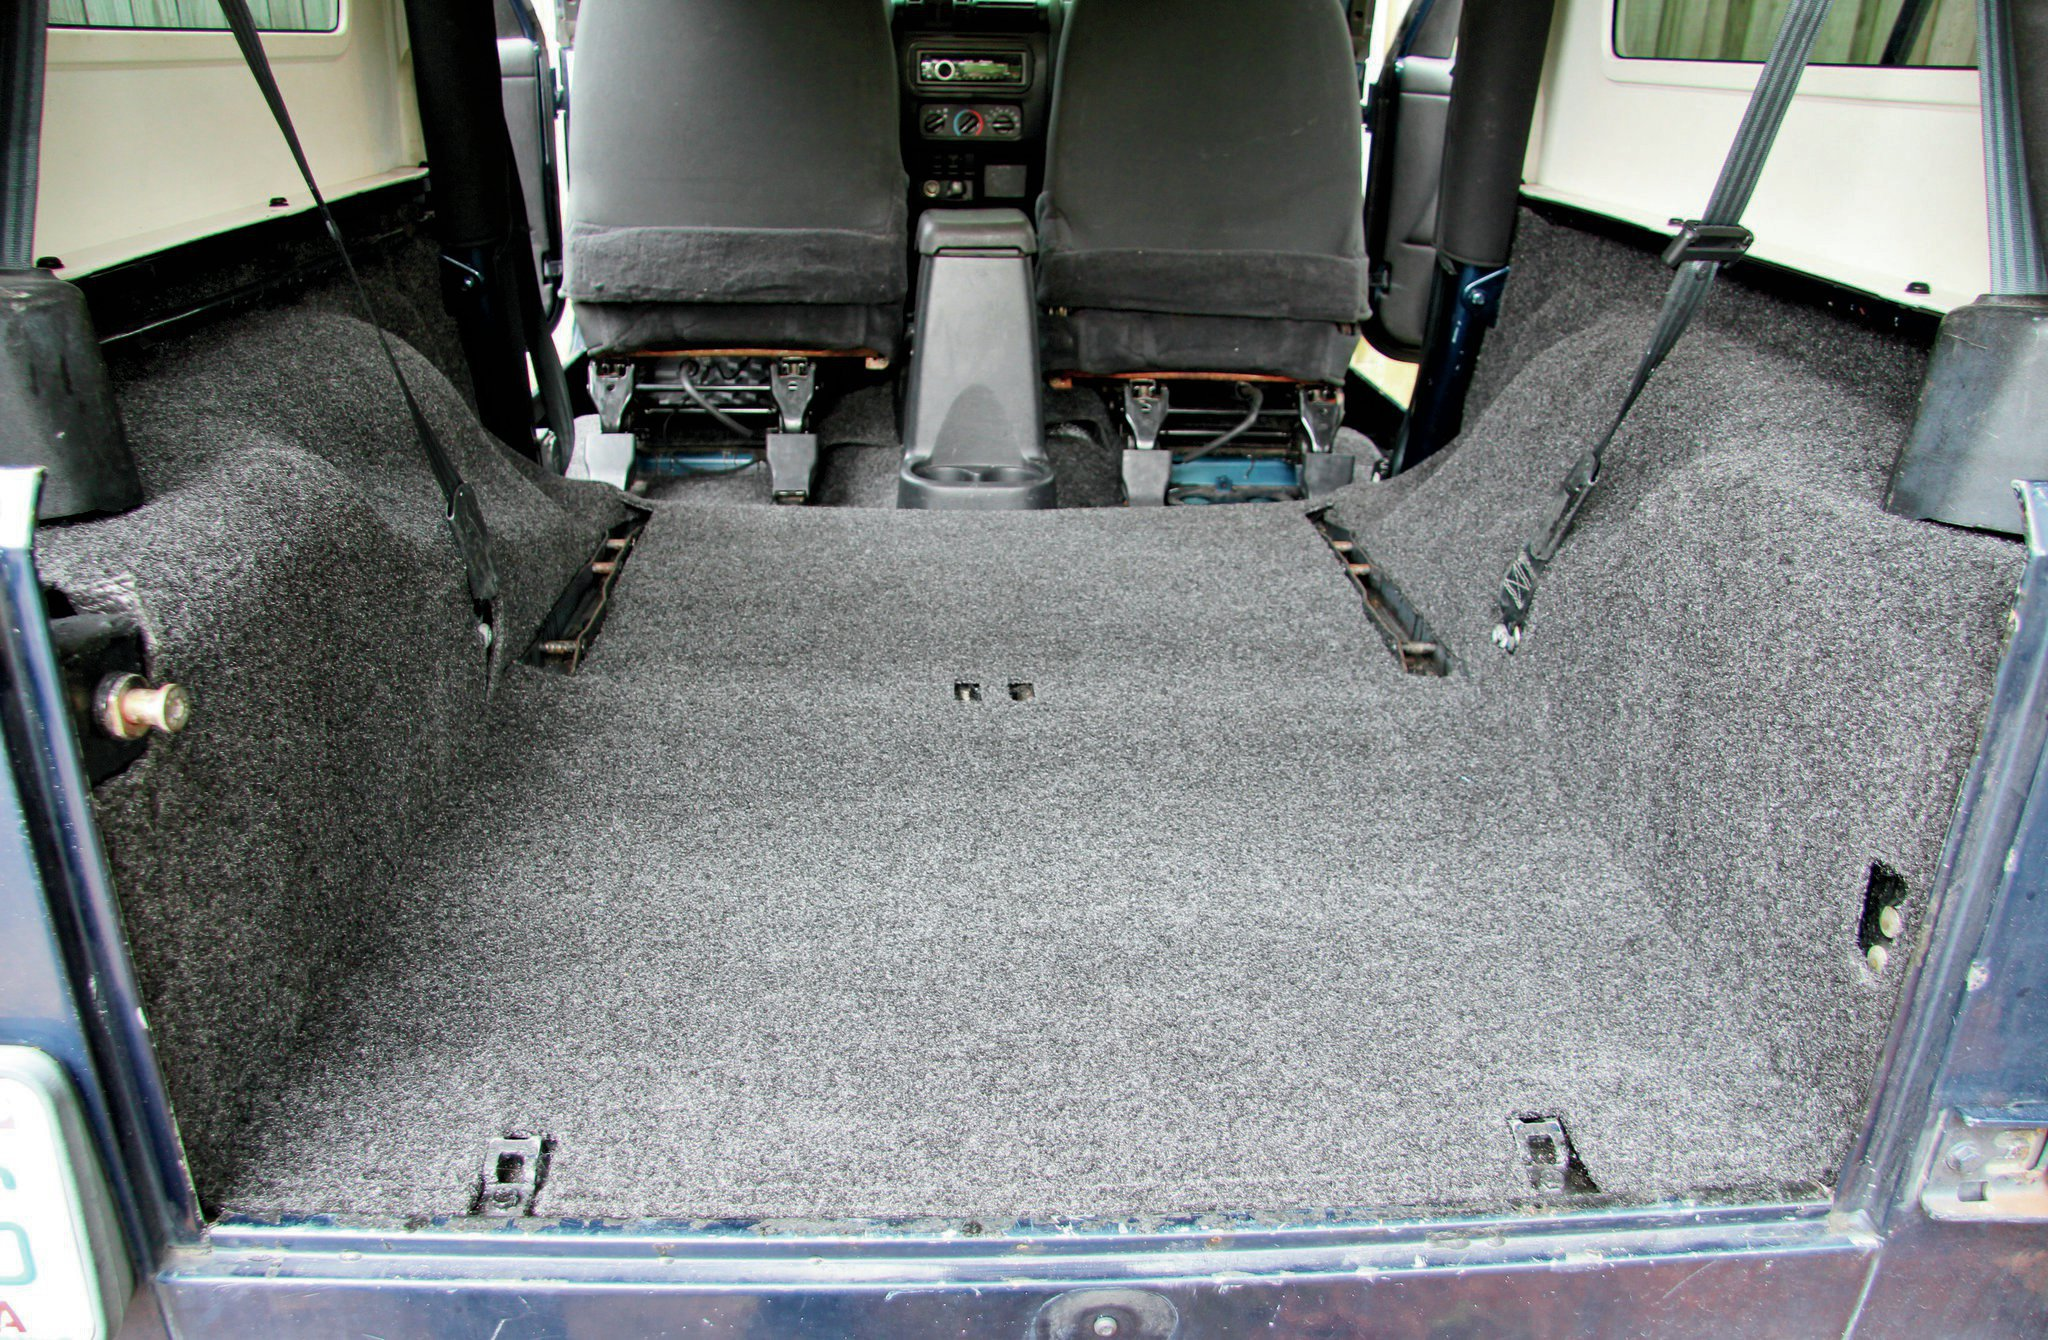 BedRug knows that many Wrangler owners choose to remove their rear seats, so they offer the kits with or without access openings for the rear seat. We move our rear seat in and out frequently since we have a kiddo in the mix. This means we prefer to keep the stock seat brackets in. We opted to have the seat belt openings as well as the seat brackets cutout from BedRug. The fit was spot-on.